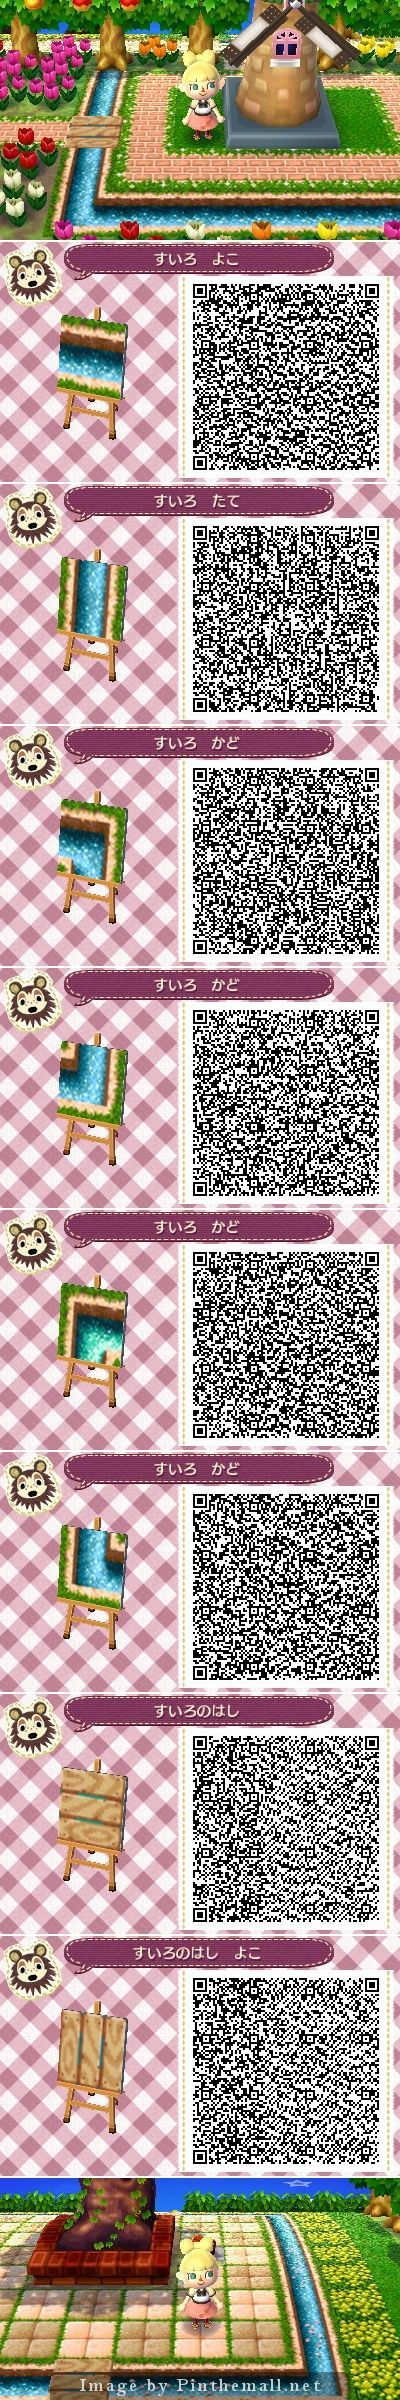 river water qr code animal crossing pinterest